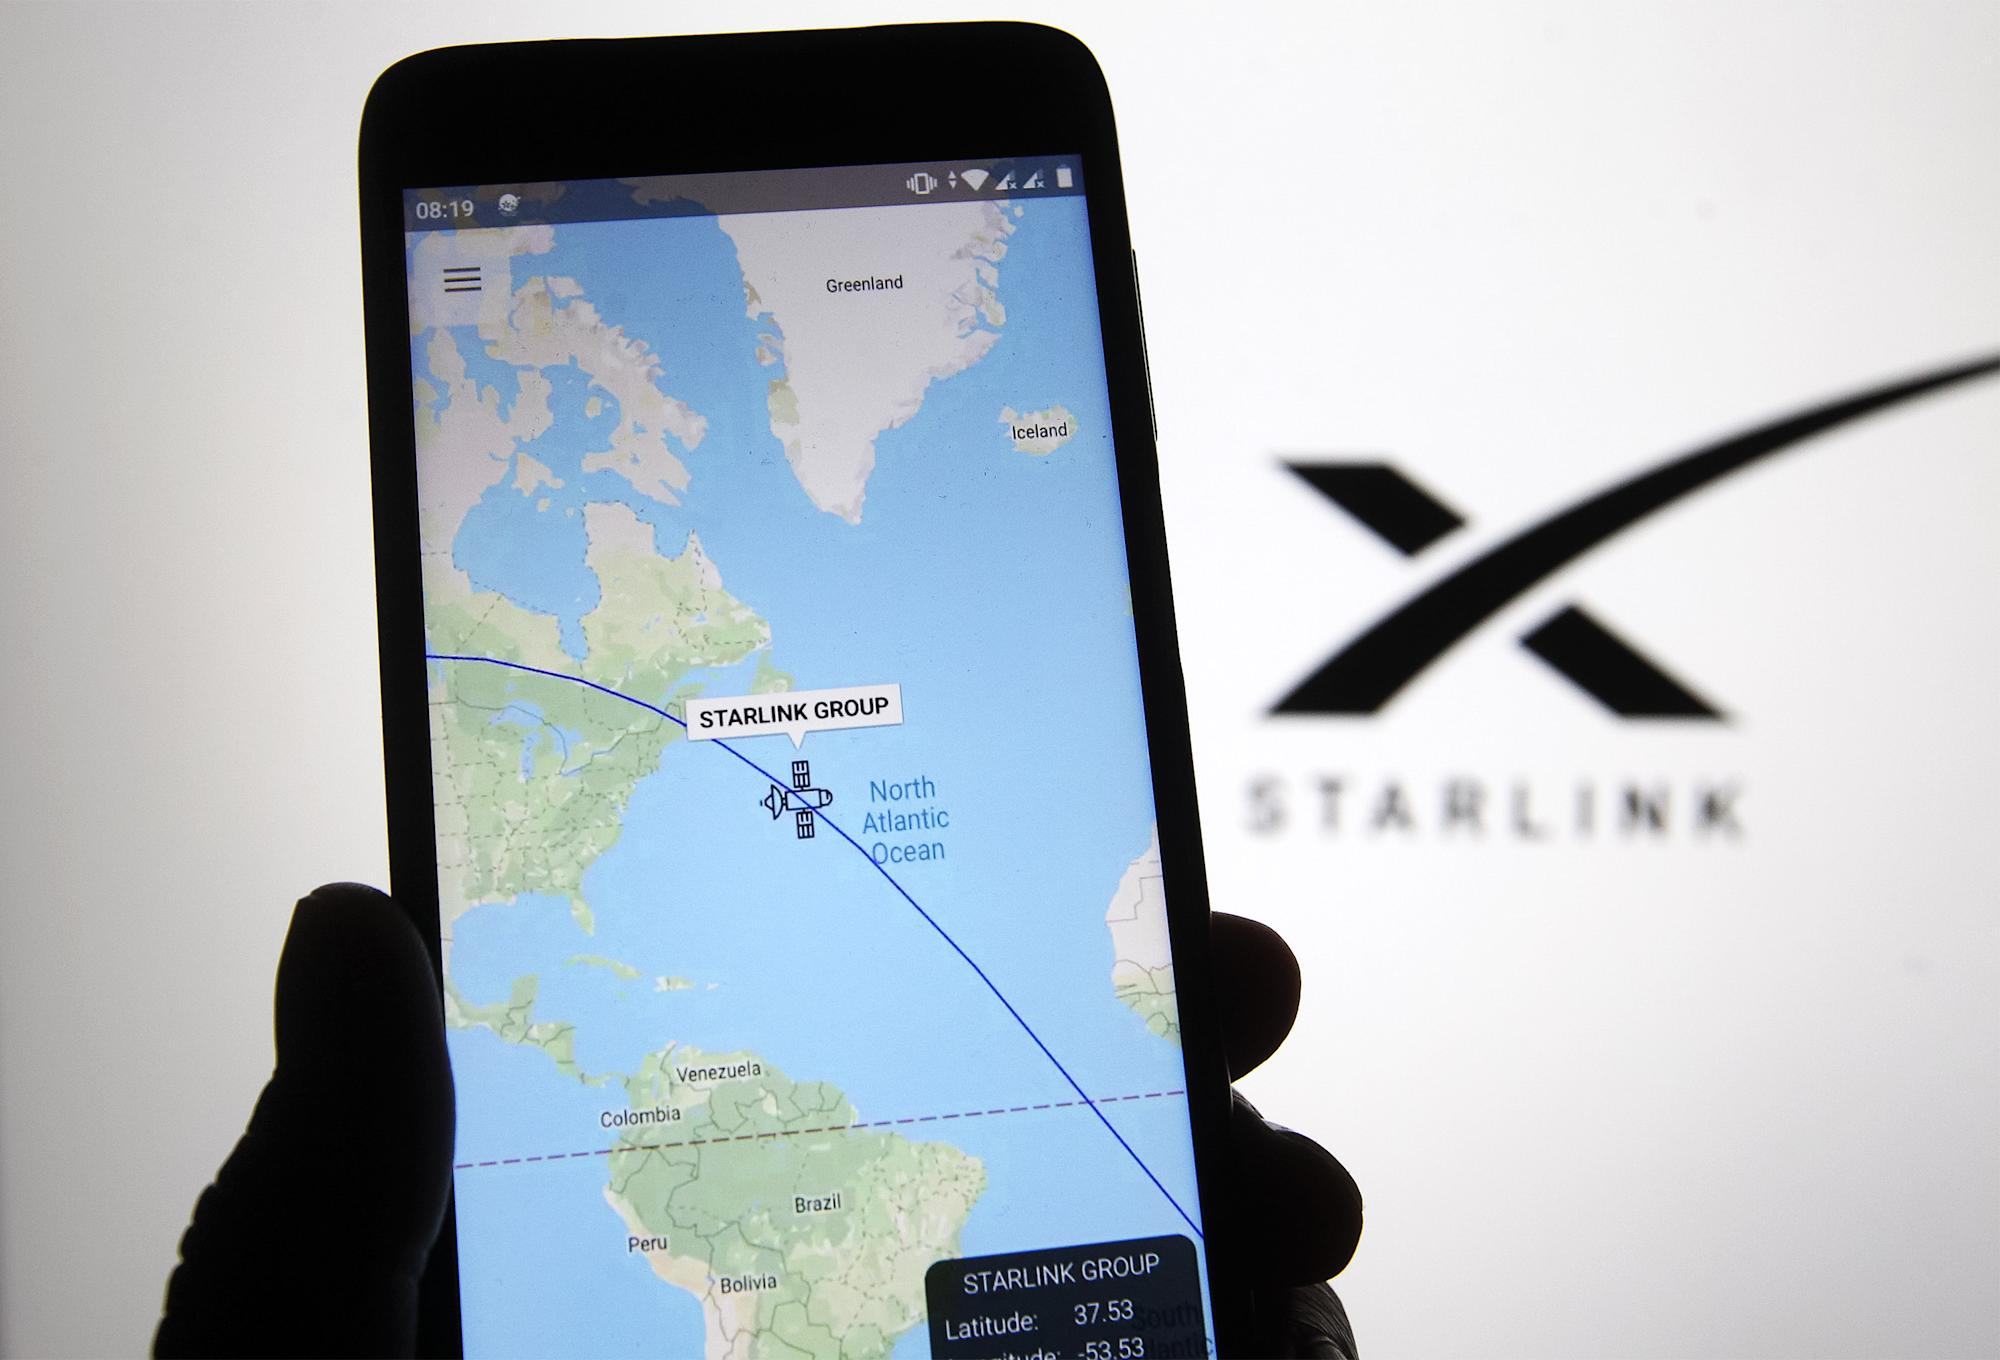 SpaceX opens Starlink satellite internet pre-orders to the public